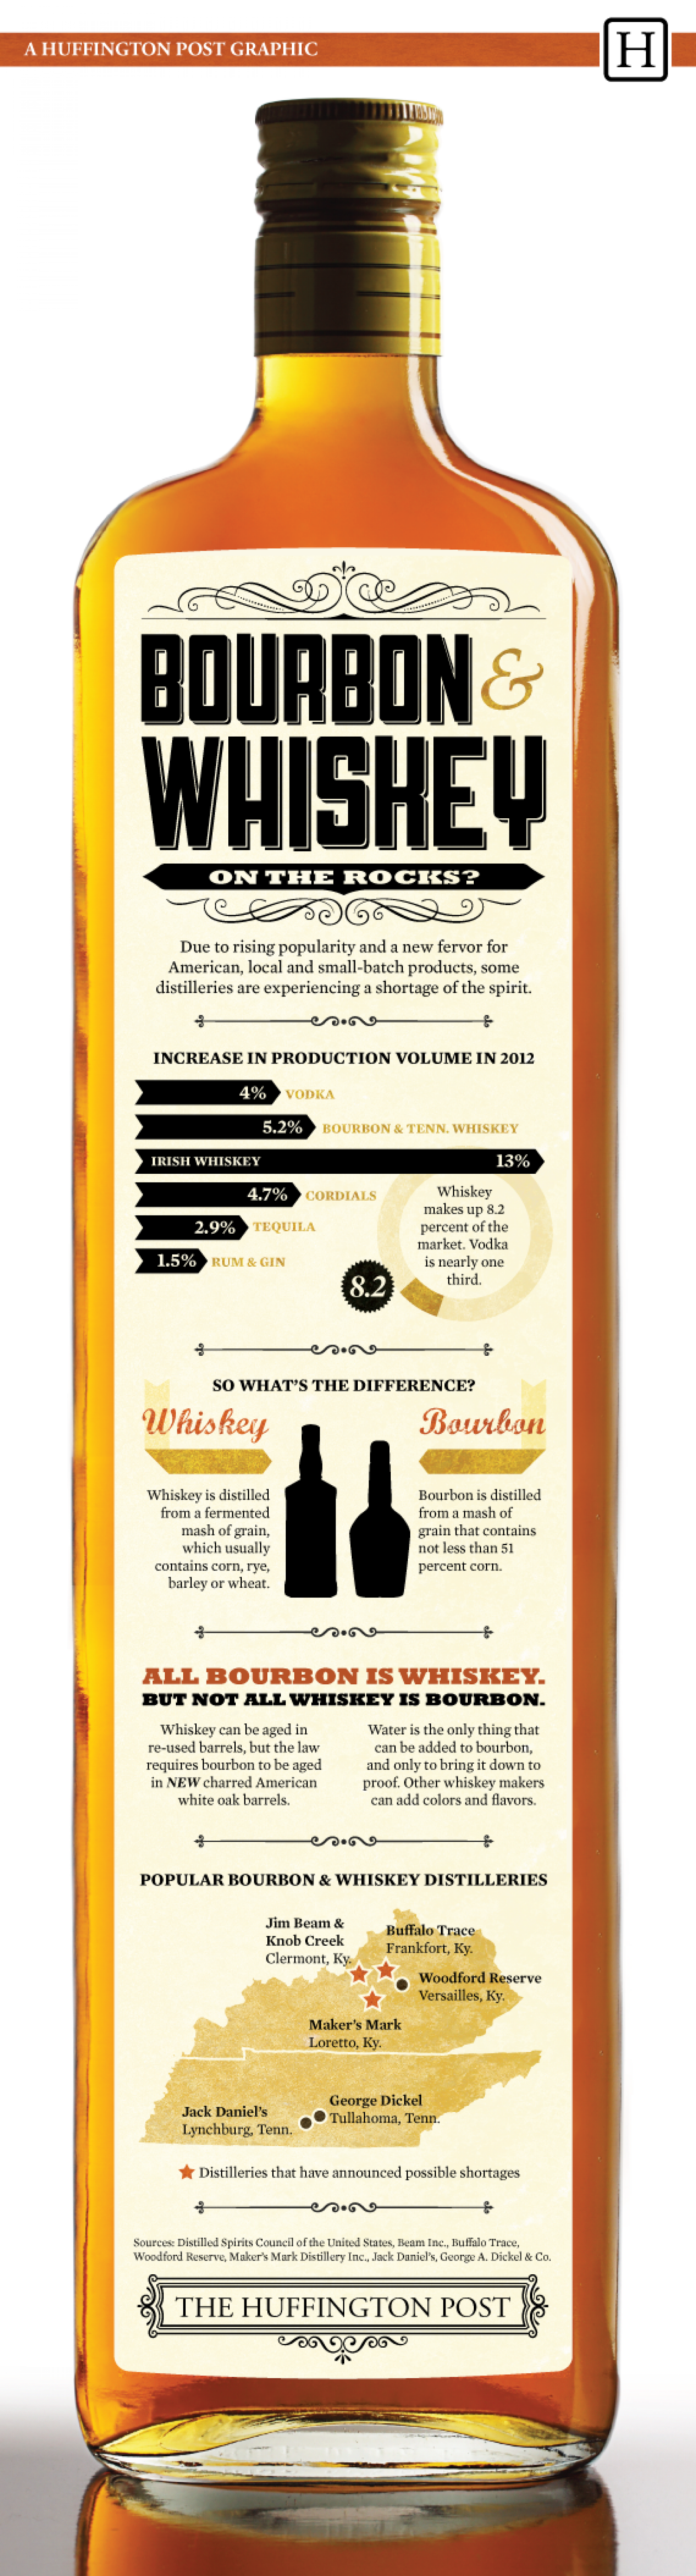 Bourbon & Whiskey: On The Rocks? Infographic